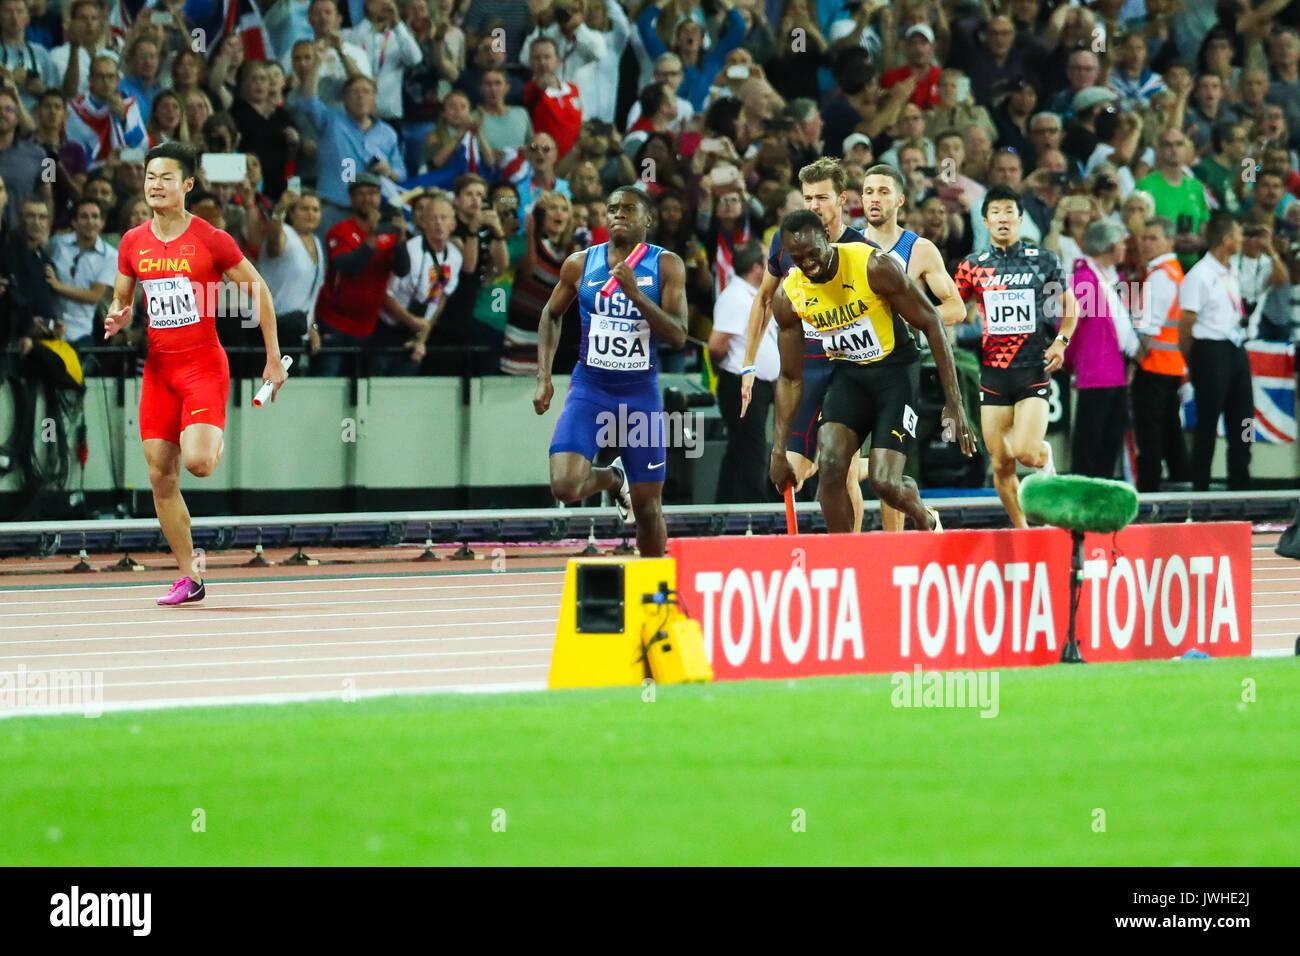 London, UK. 12th Aug, 2017. London, August 12 2017 . Usain Bolt, anchor for Jamaica, pulls up in the anchor leg with a hamstring injury in the men's 4x 100m relay on day nine of the IAAF London 2017 world Championships at the London Stadium. Credit: Paul Davey/Alamy Live News - Stock Image